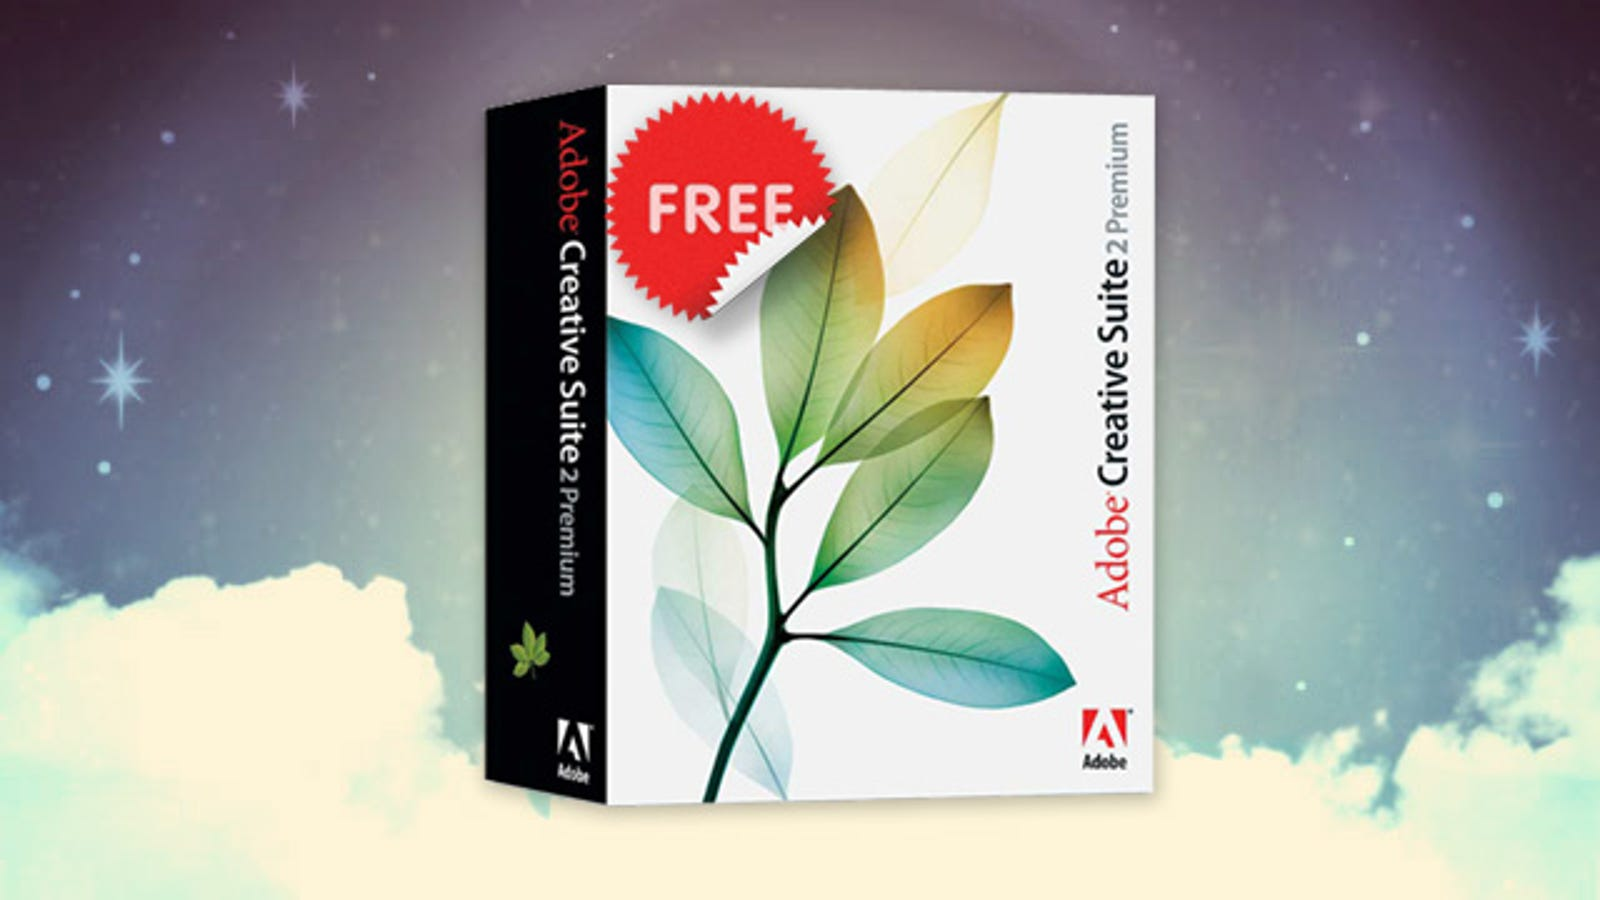 Adobe creative suite latest version